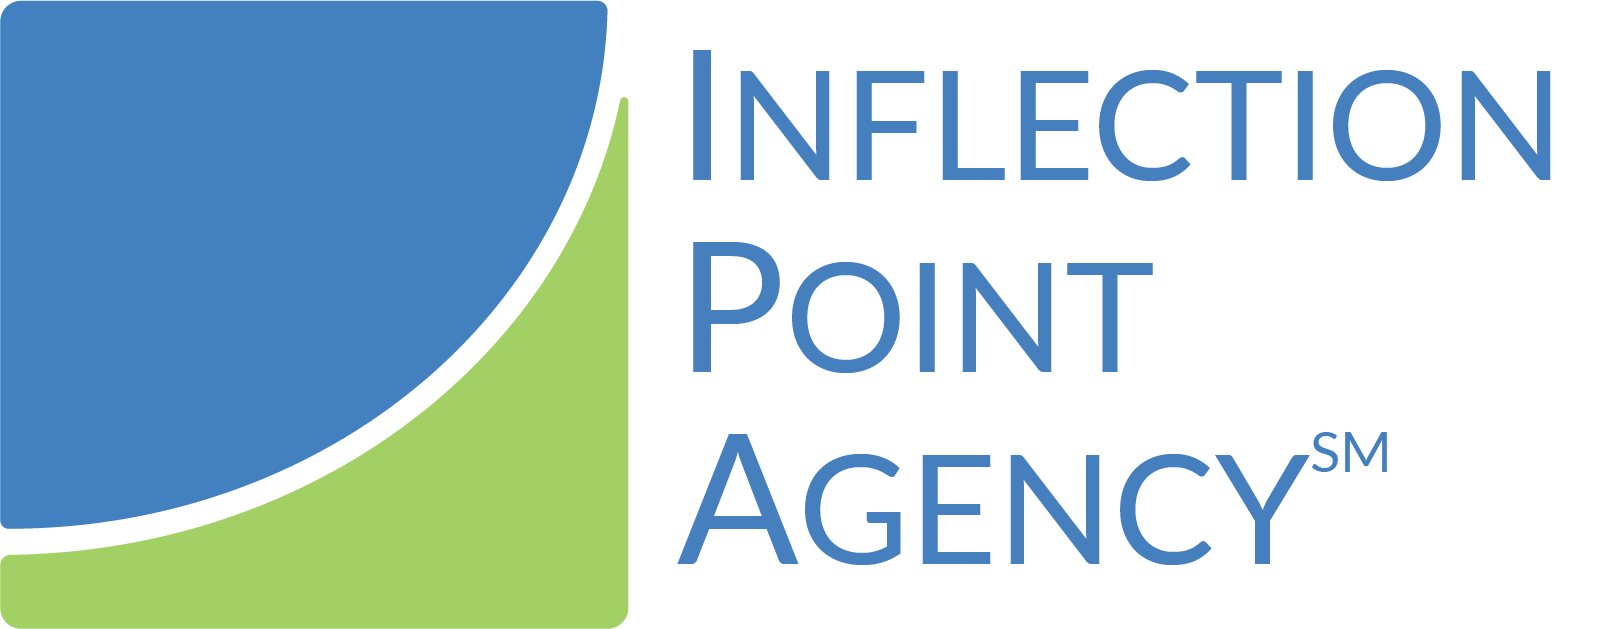 Inflection Point Agency logo